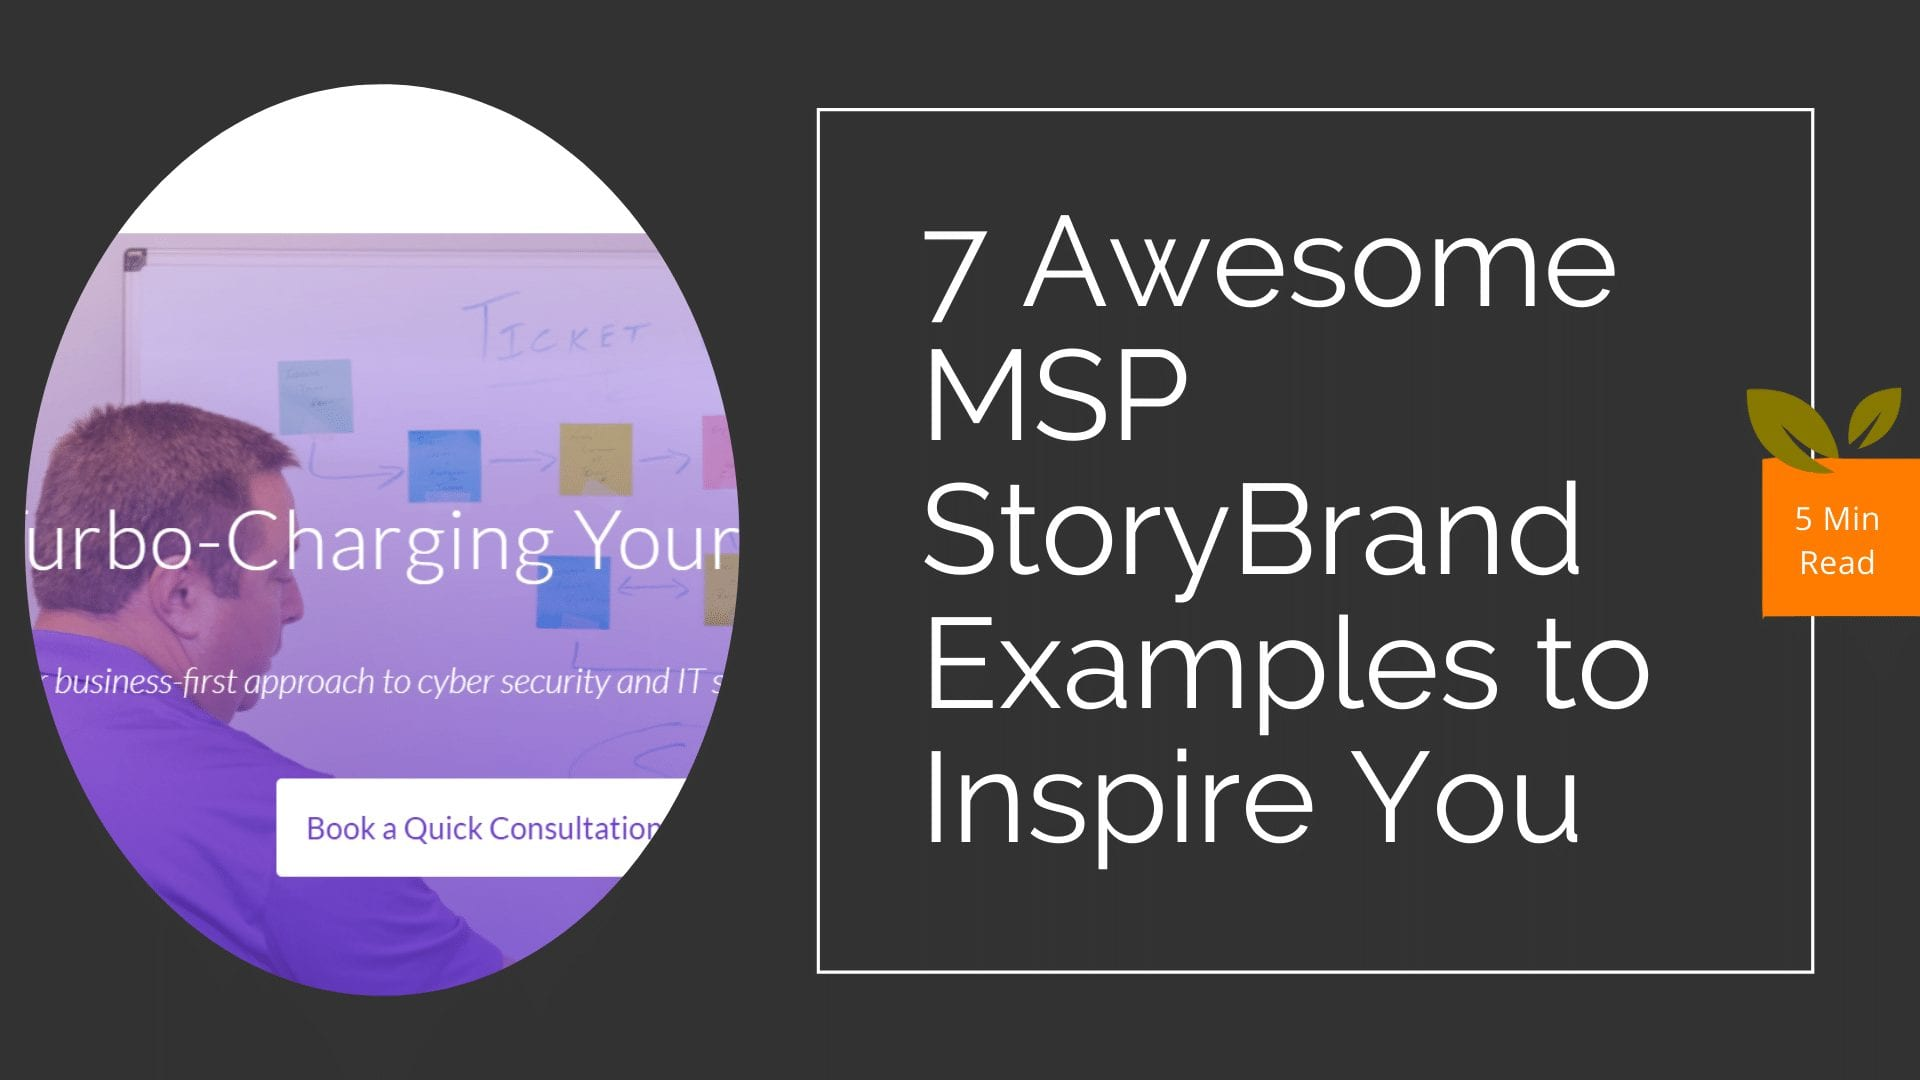 Awesome MSP StoryBrand Examples